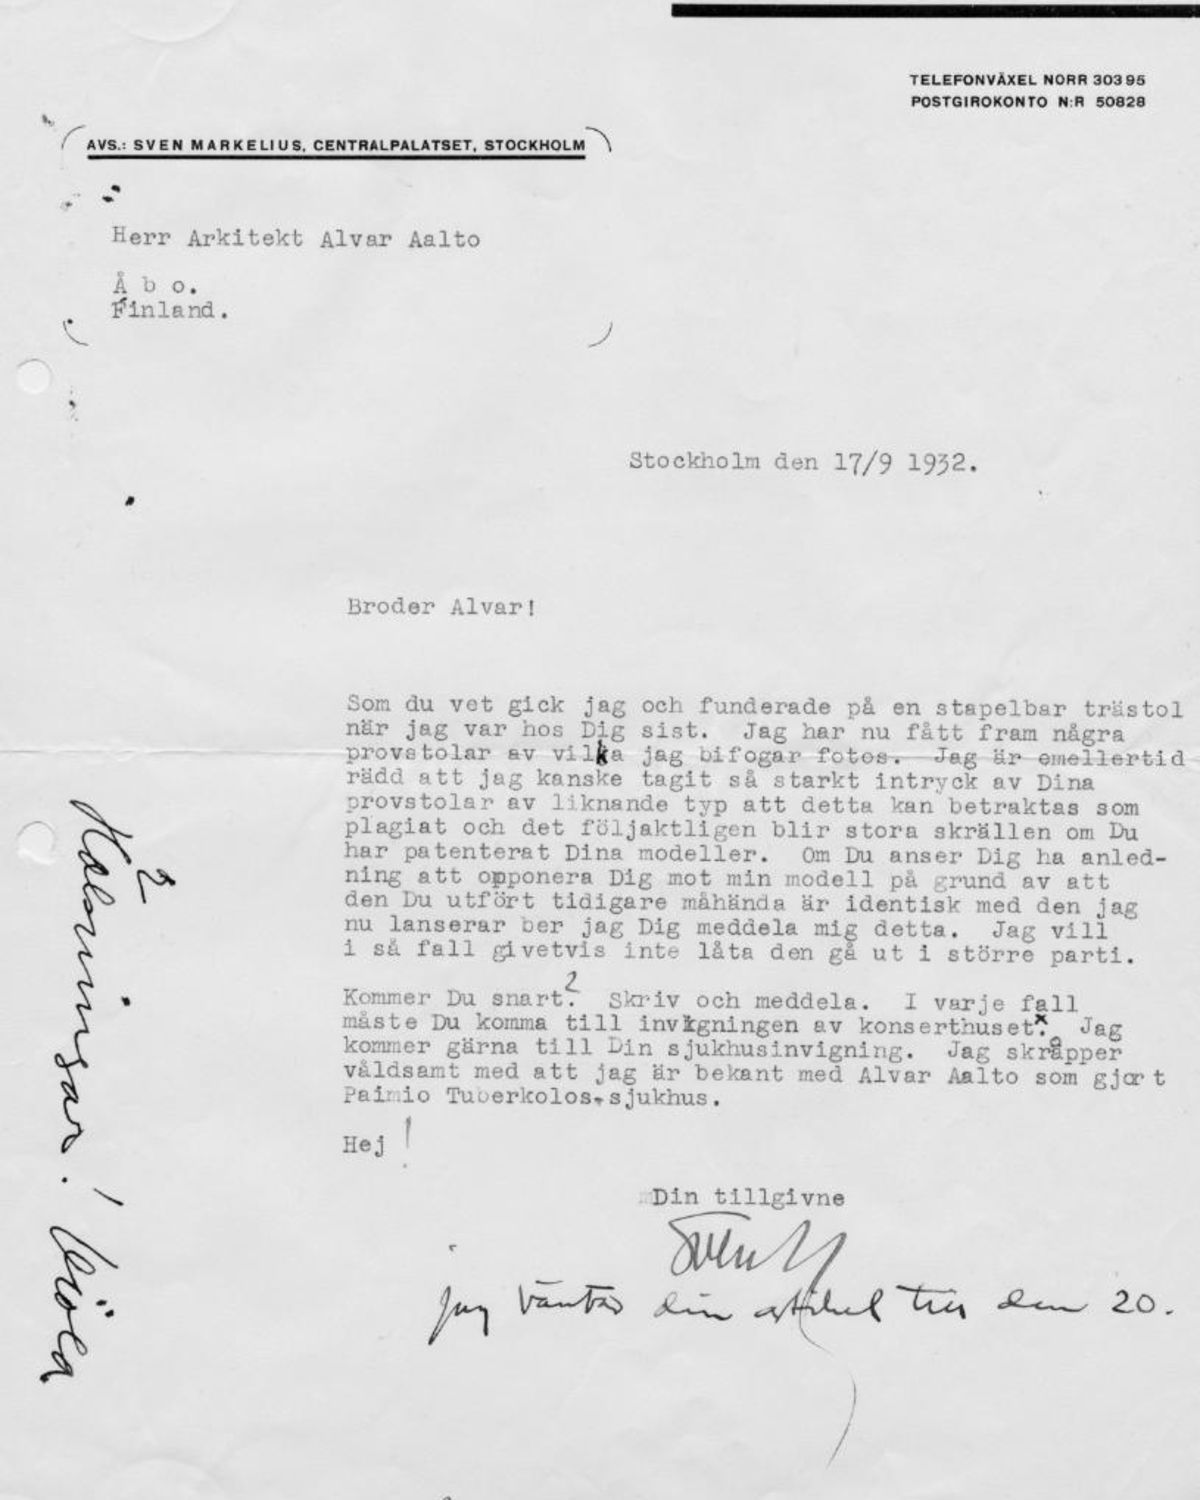 10314__Orchestra Chair_Markelius_letter_to_Aalto